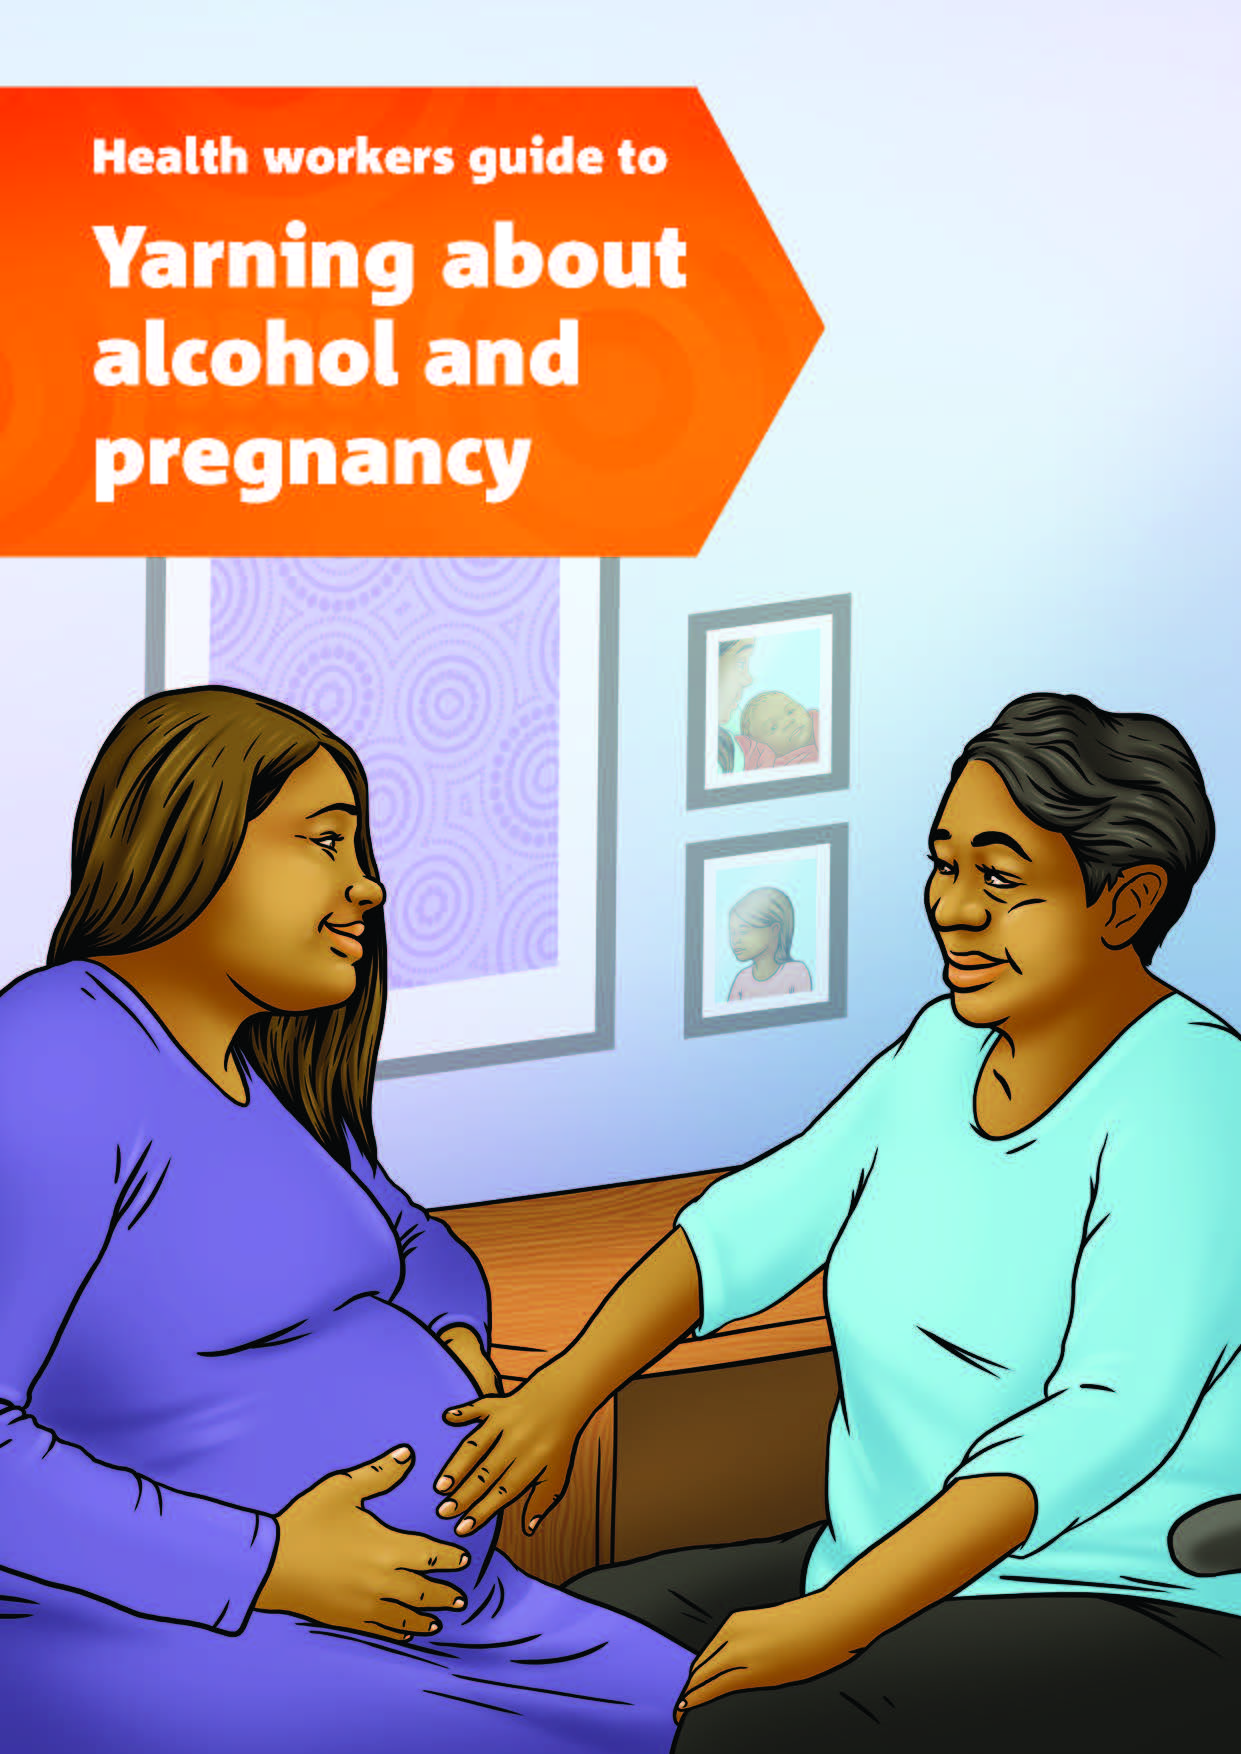 Health workers guide to yarning about alcohol and pregnancy